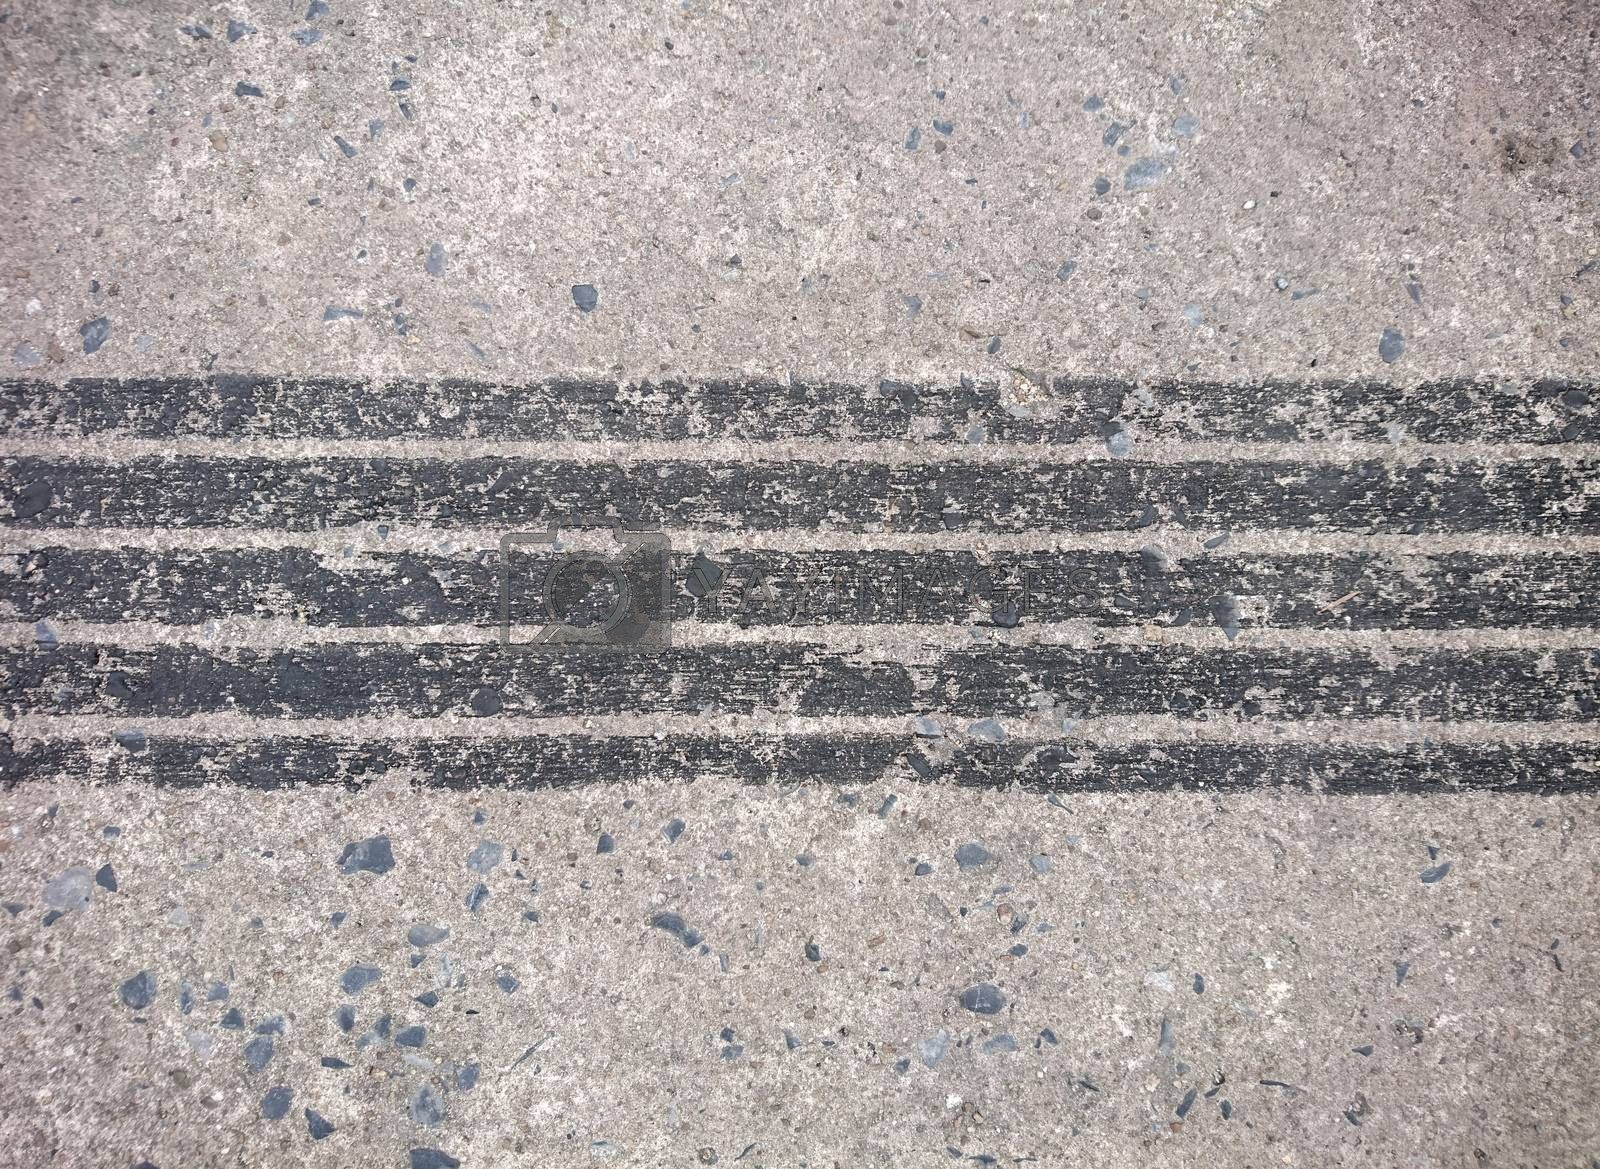 Background of tire marks on cement road